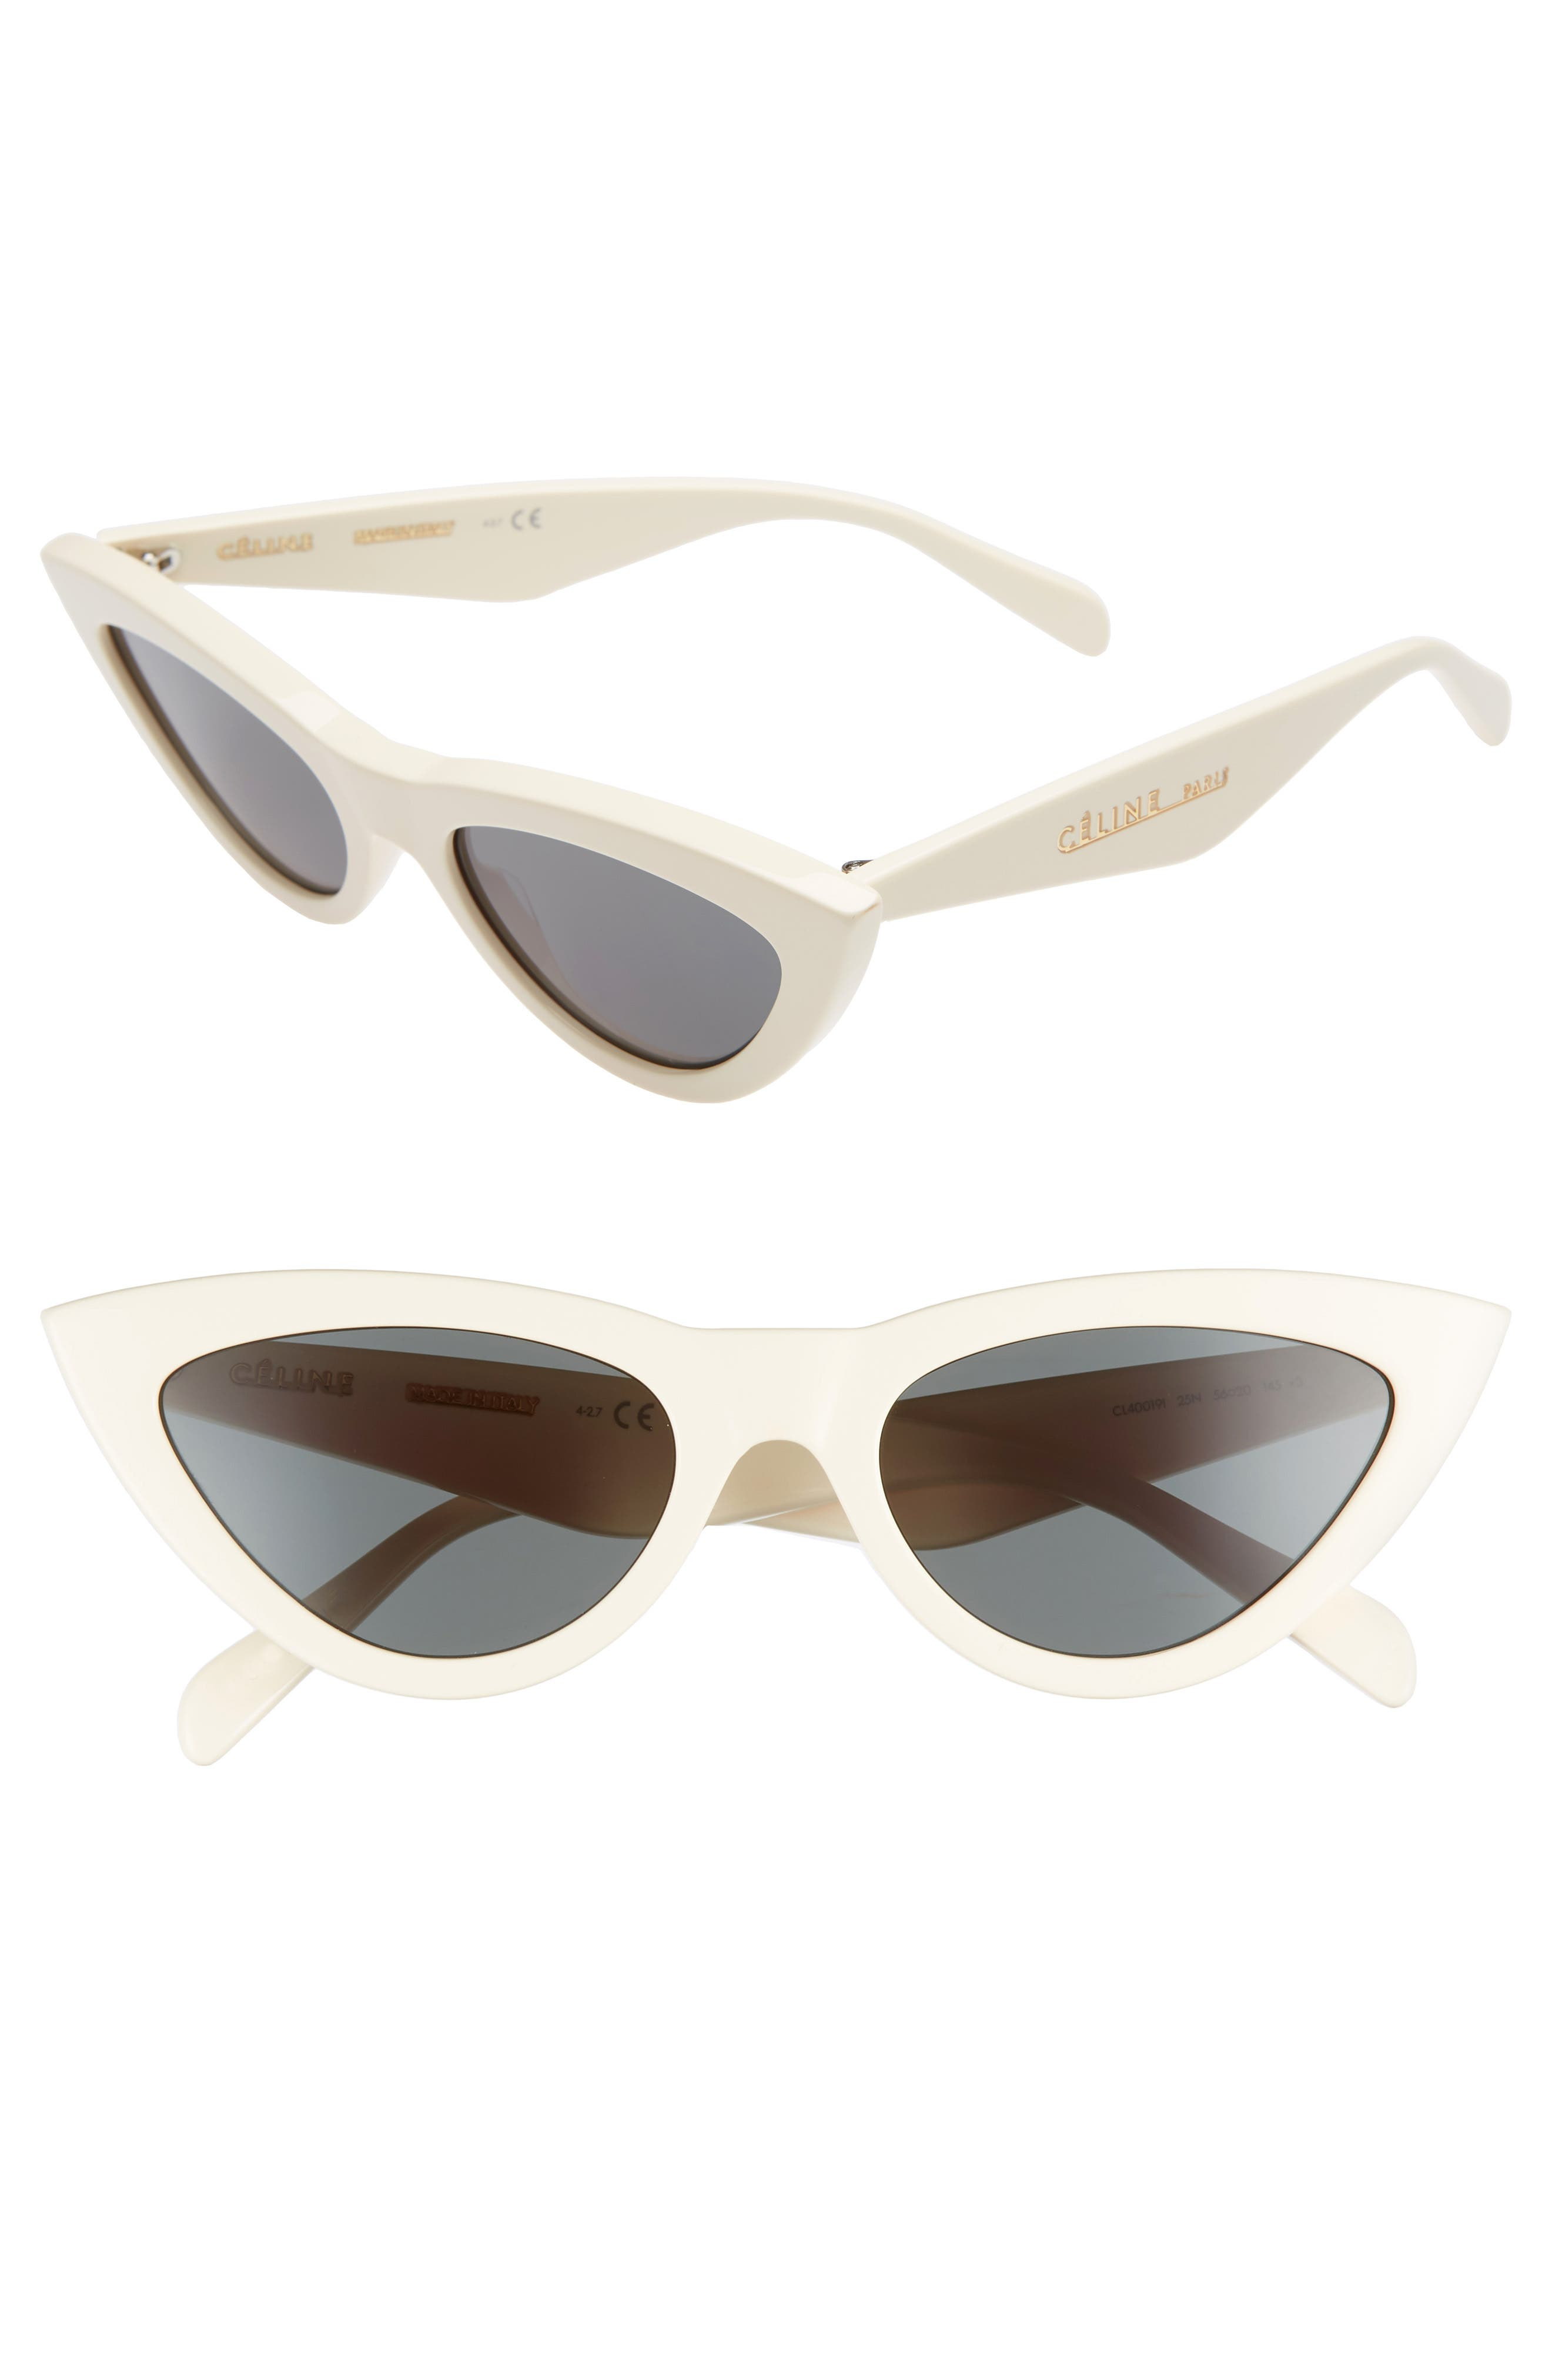 40951db3b7 CELINE Sunglasses for Women